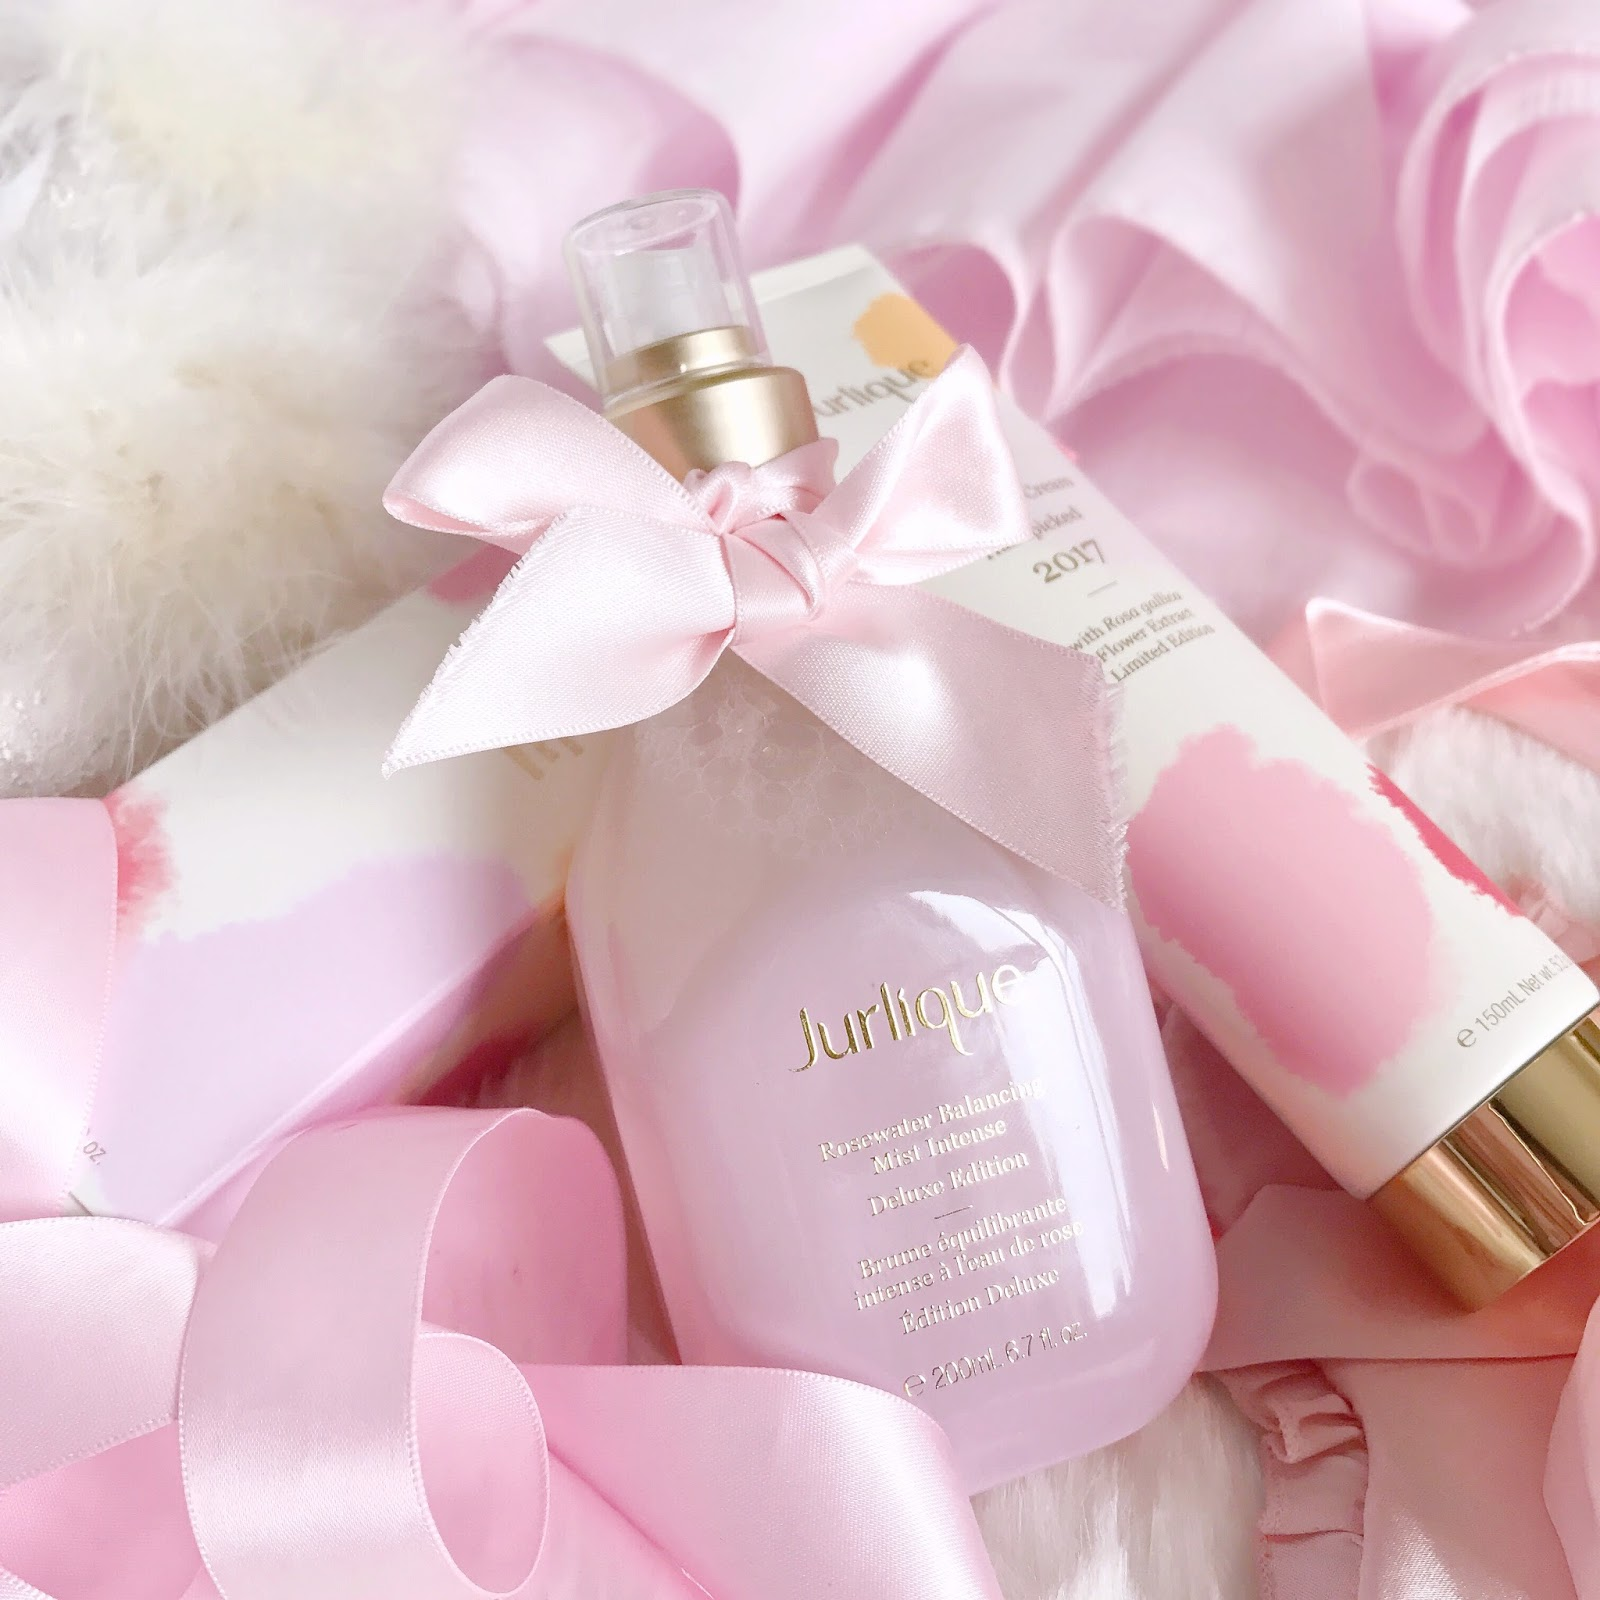 Jurlique Limited Edition Rosewater Balancing Mist & Rose Hand Cream 2017